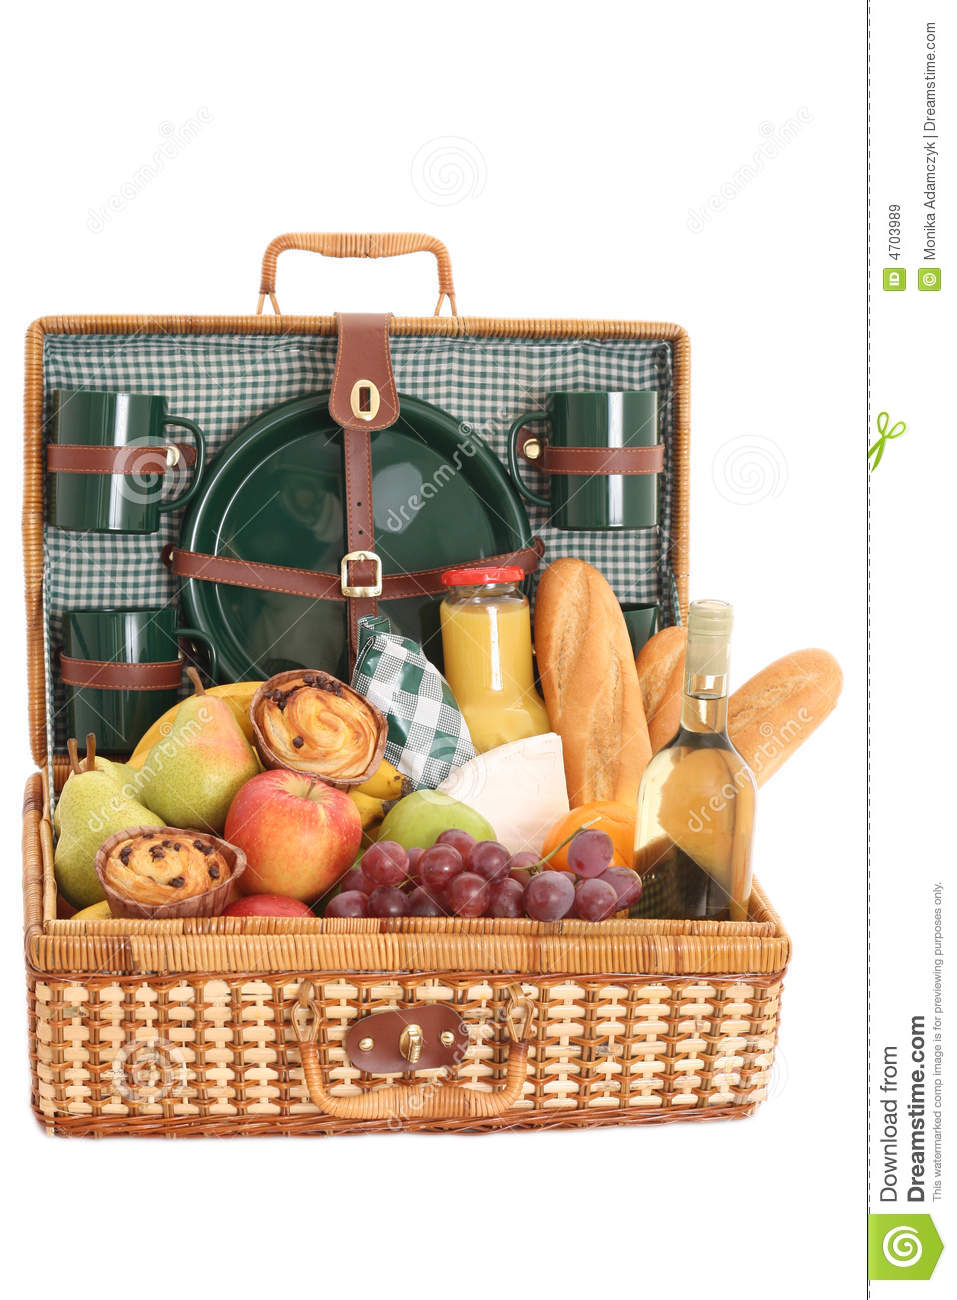 Picnic Basket Business : Picnic basket royalty free stock images image